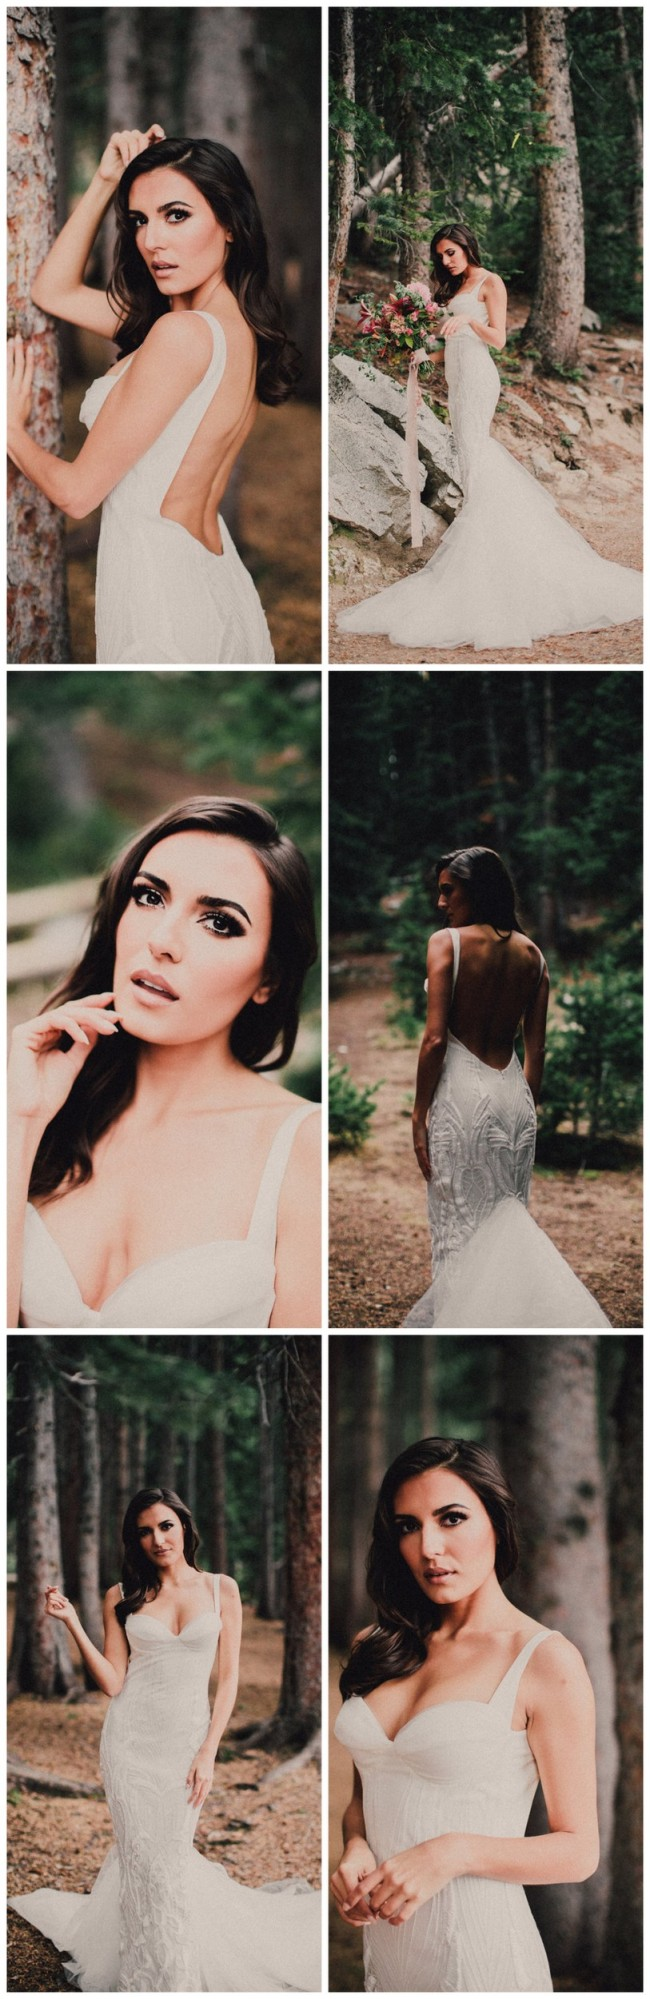 Backless Wedding Dress 2016: Katie May Gown - Images by Ty French)